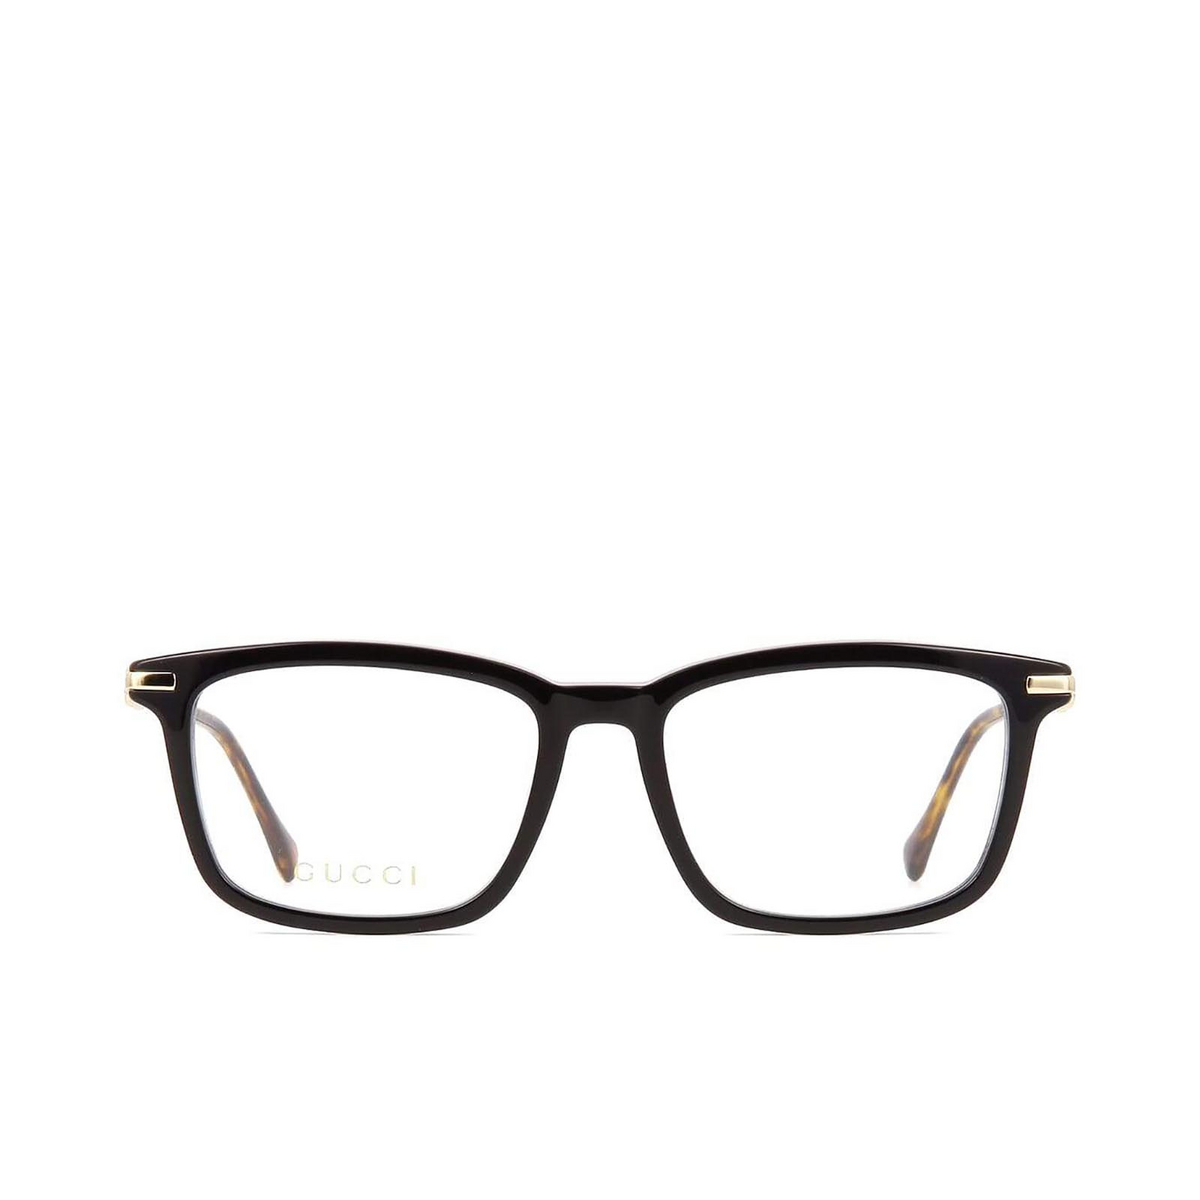 Gucci® Rectangle Eyeglasses: GG0920O color Black 001 - front view.